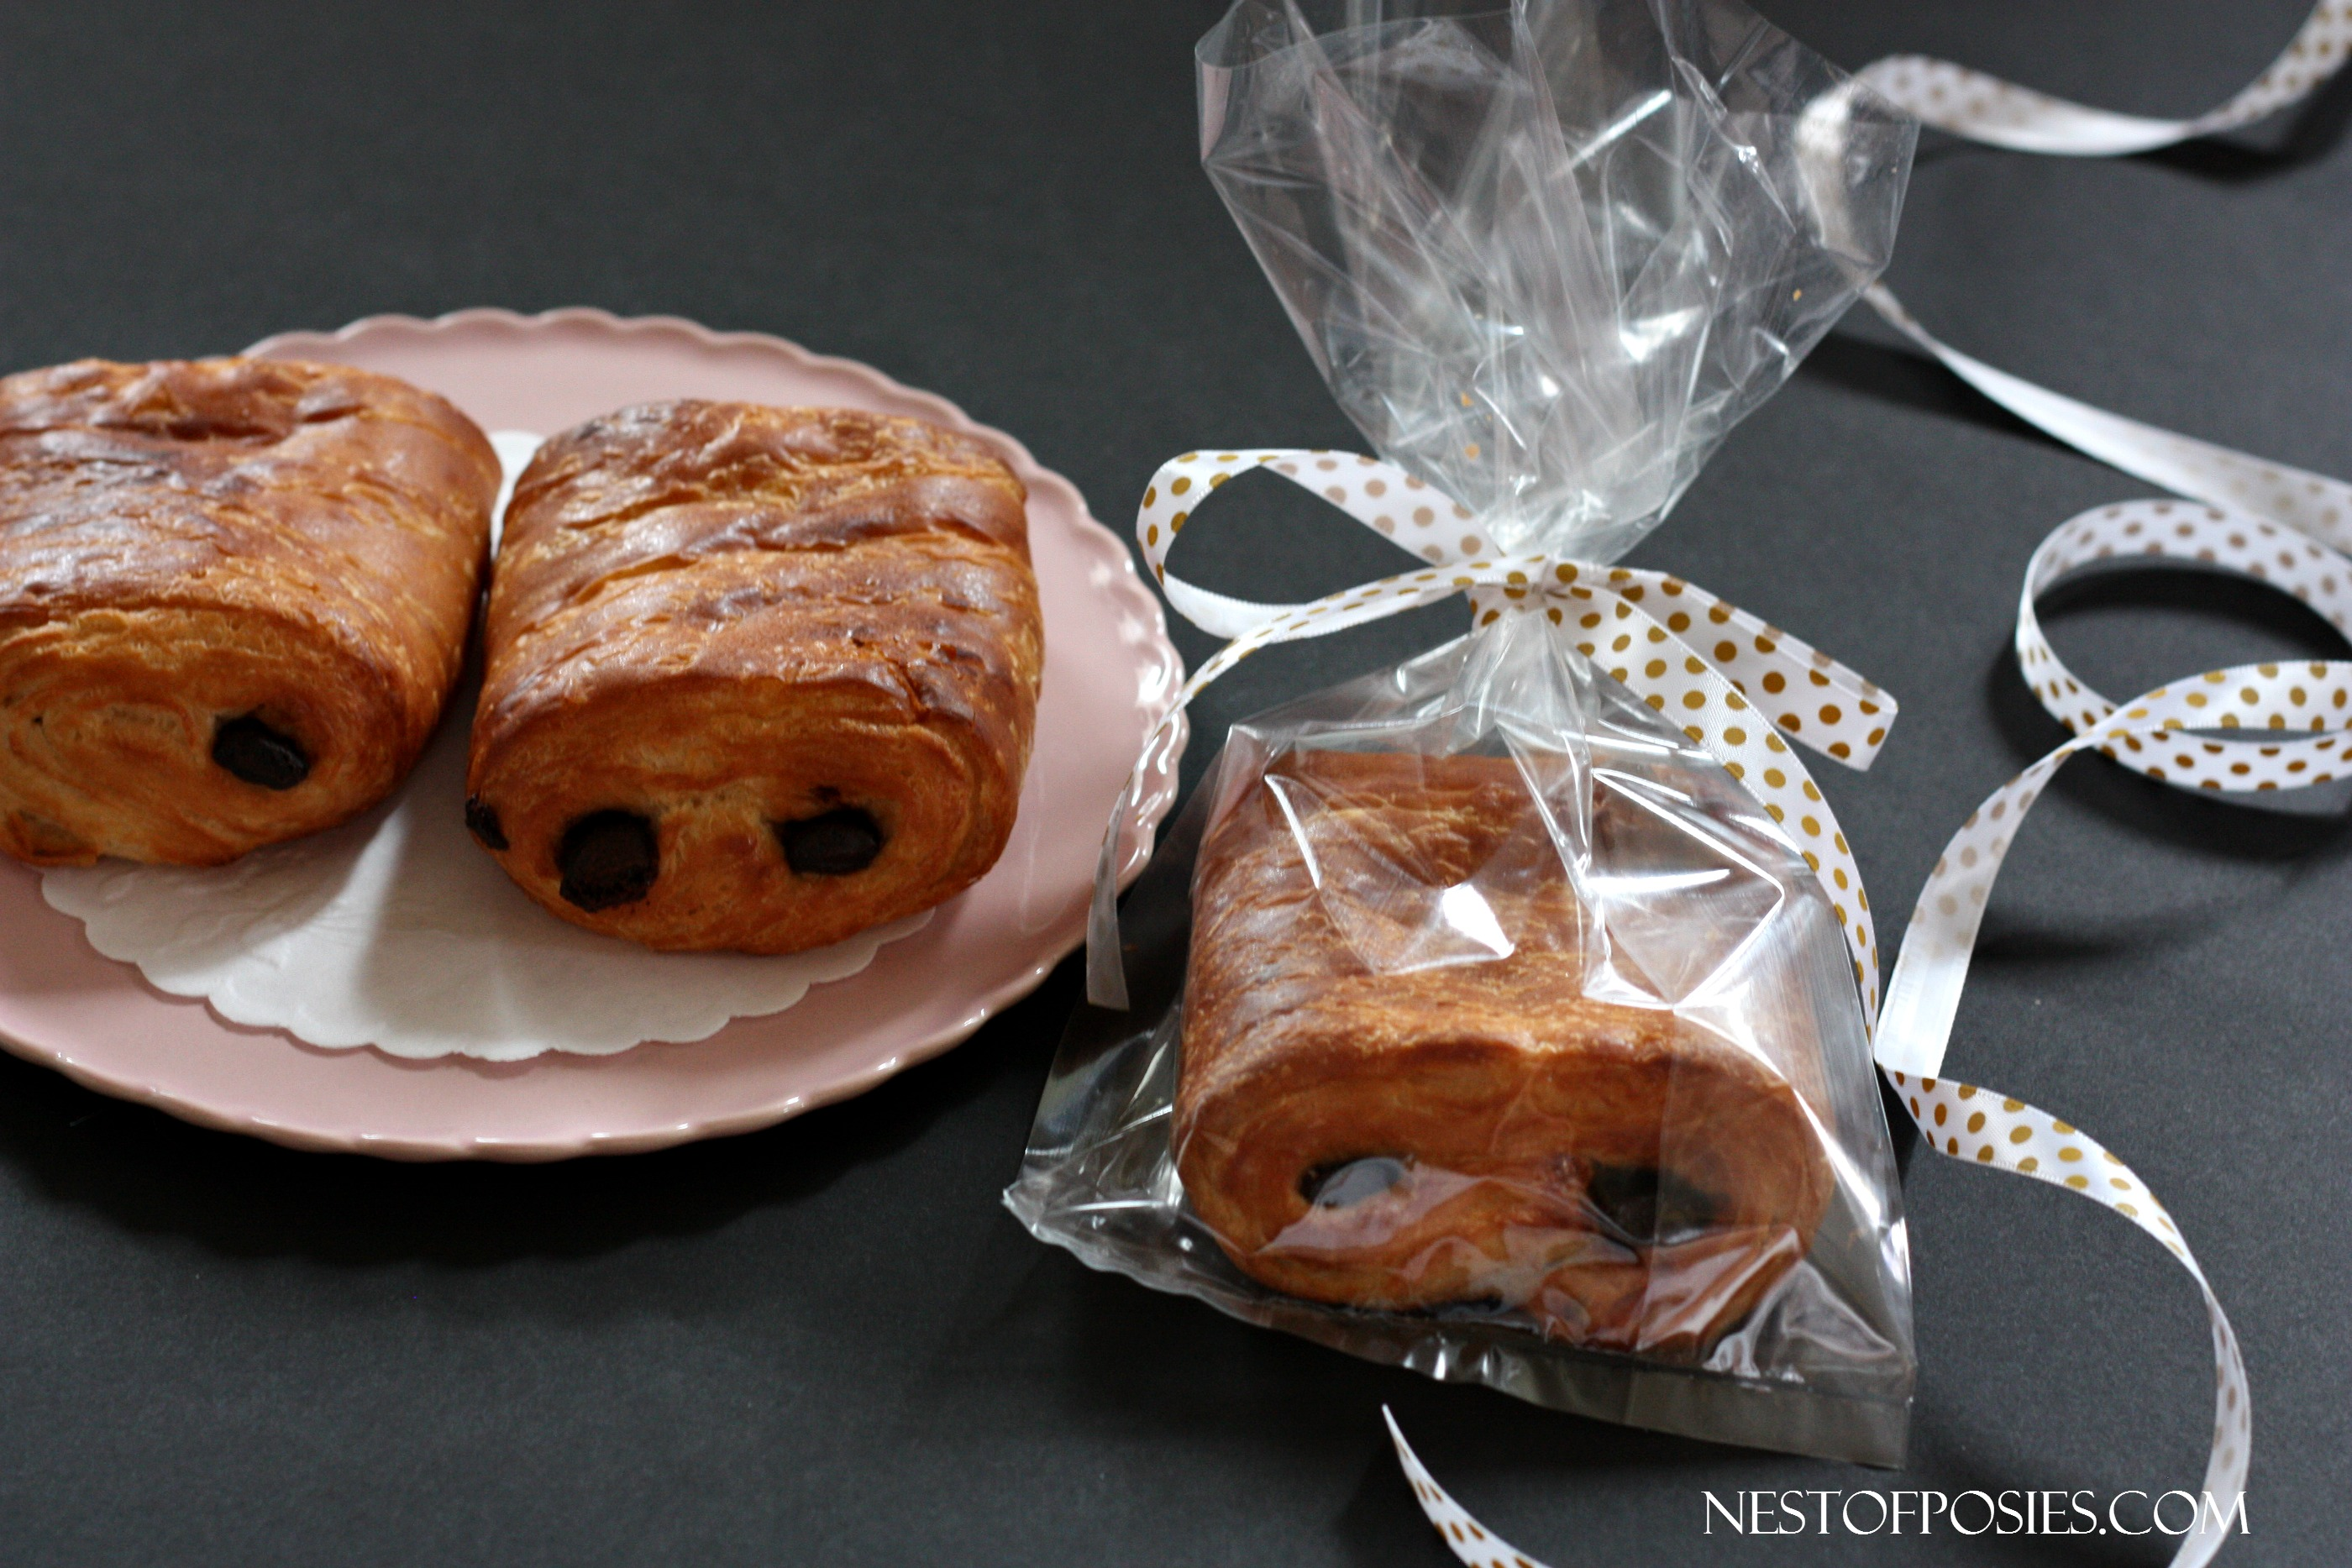 Fun packaging ideas with everyday baked goods